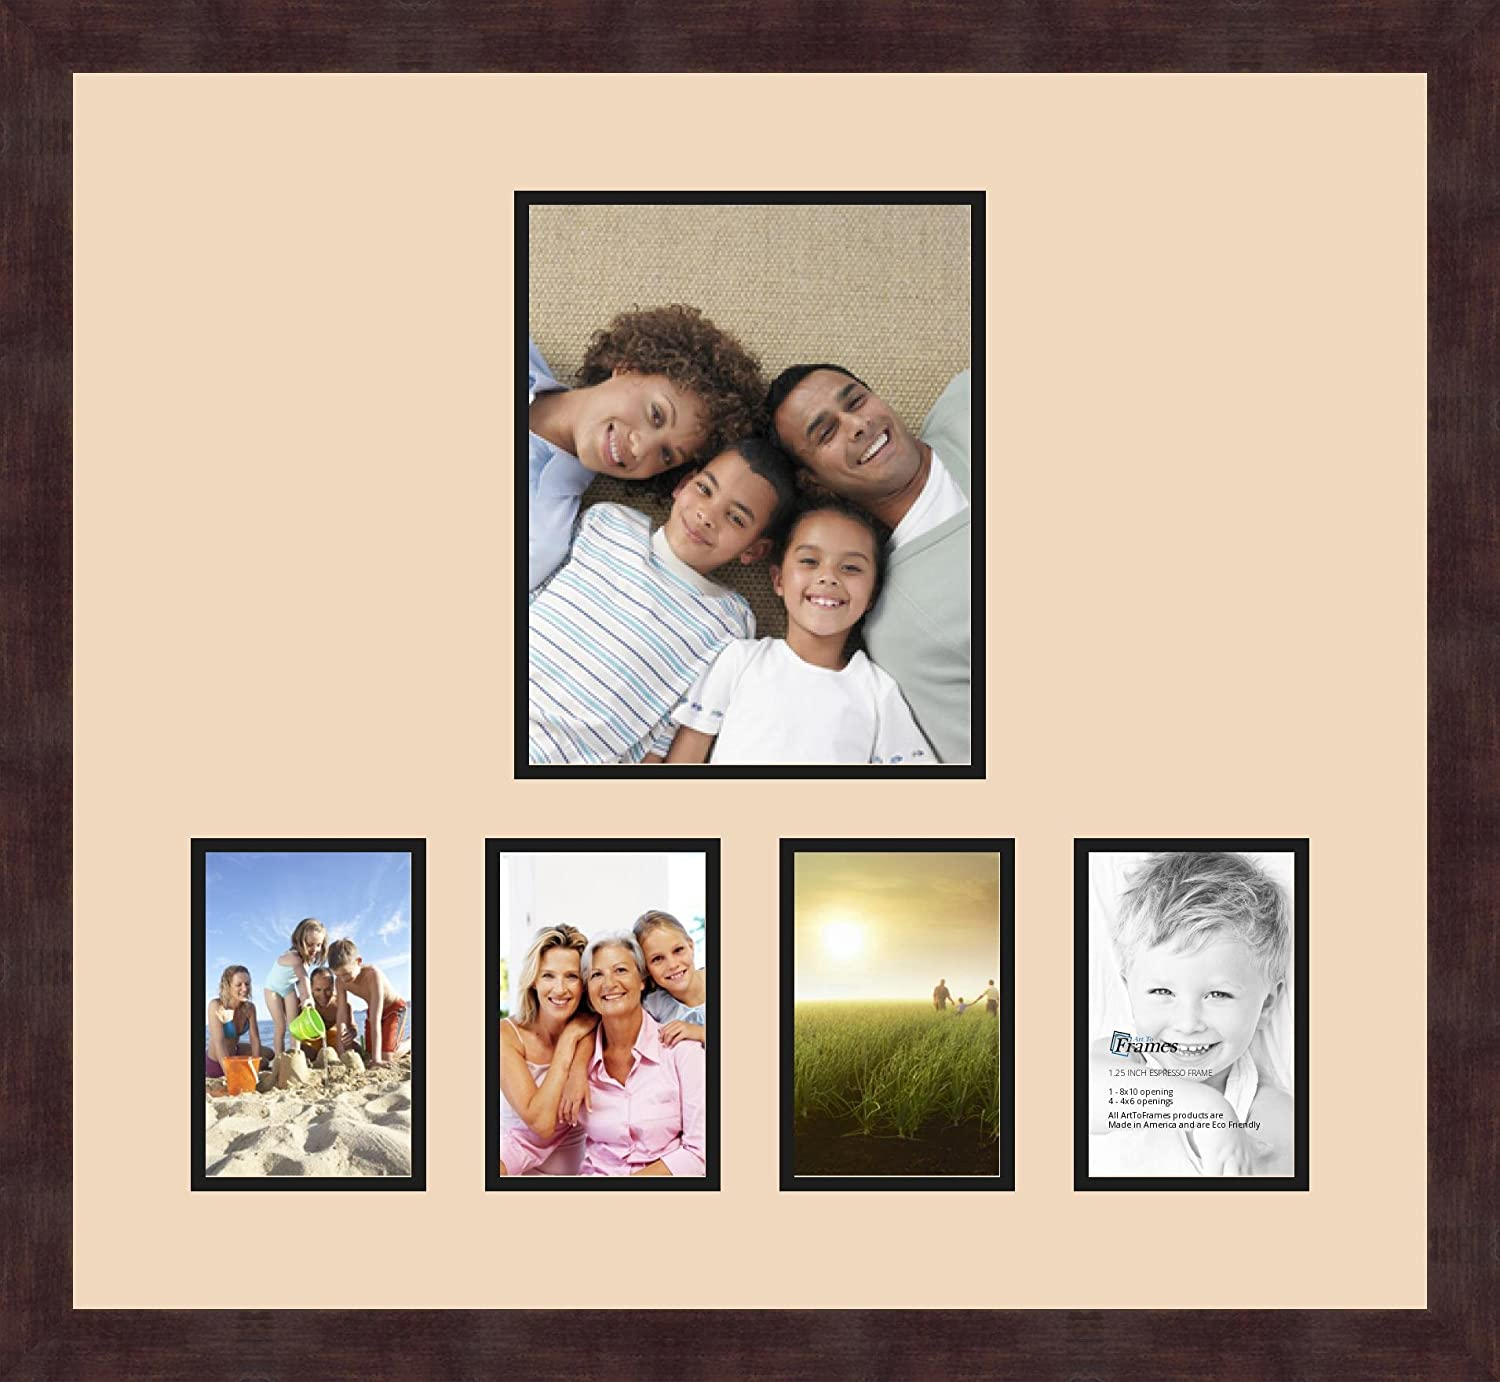 and Espresso Frame Art to Frames Double-Multimat-1072-783//89-FRBW26061 Alphabet Photography Picture Frame with 1-8x10 and 4-4x6 Openings